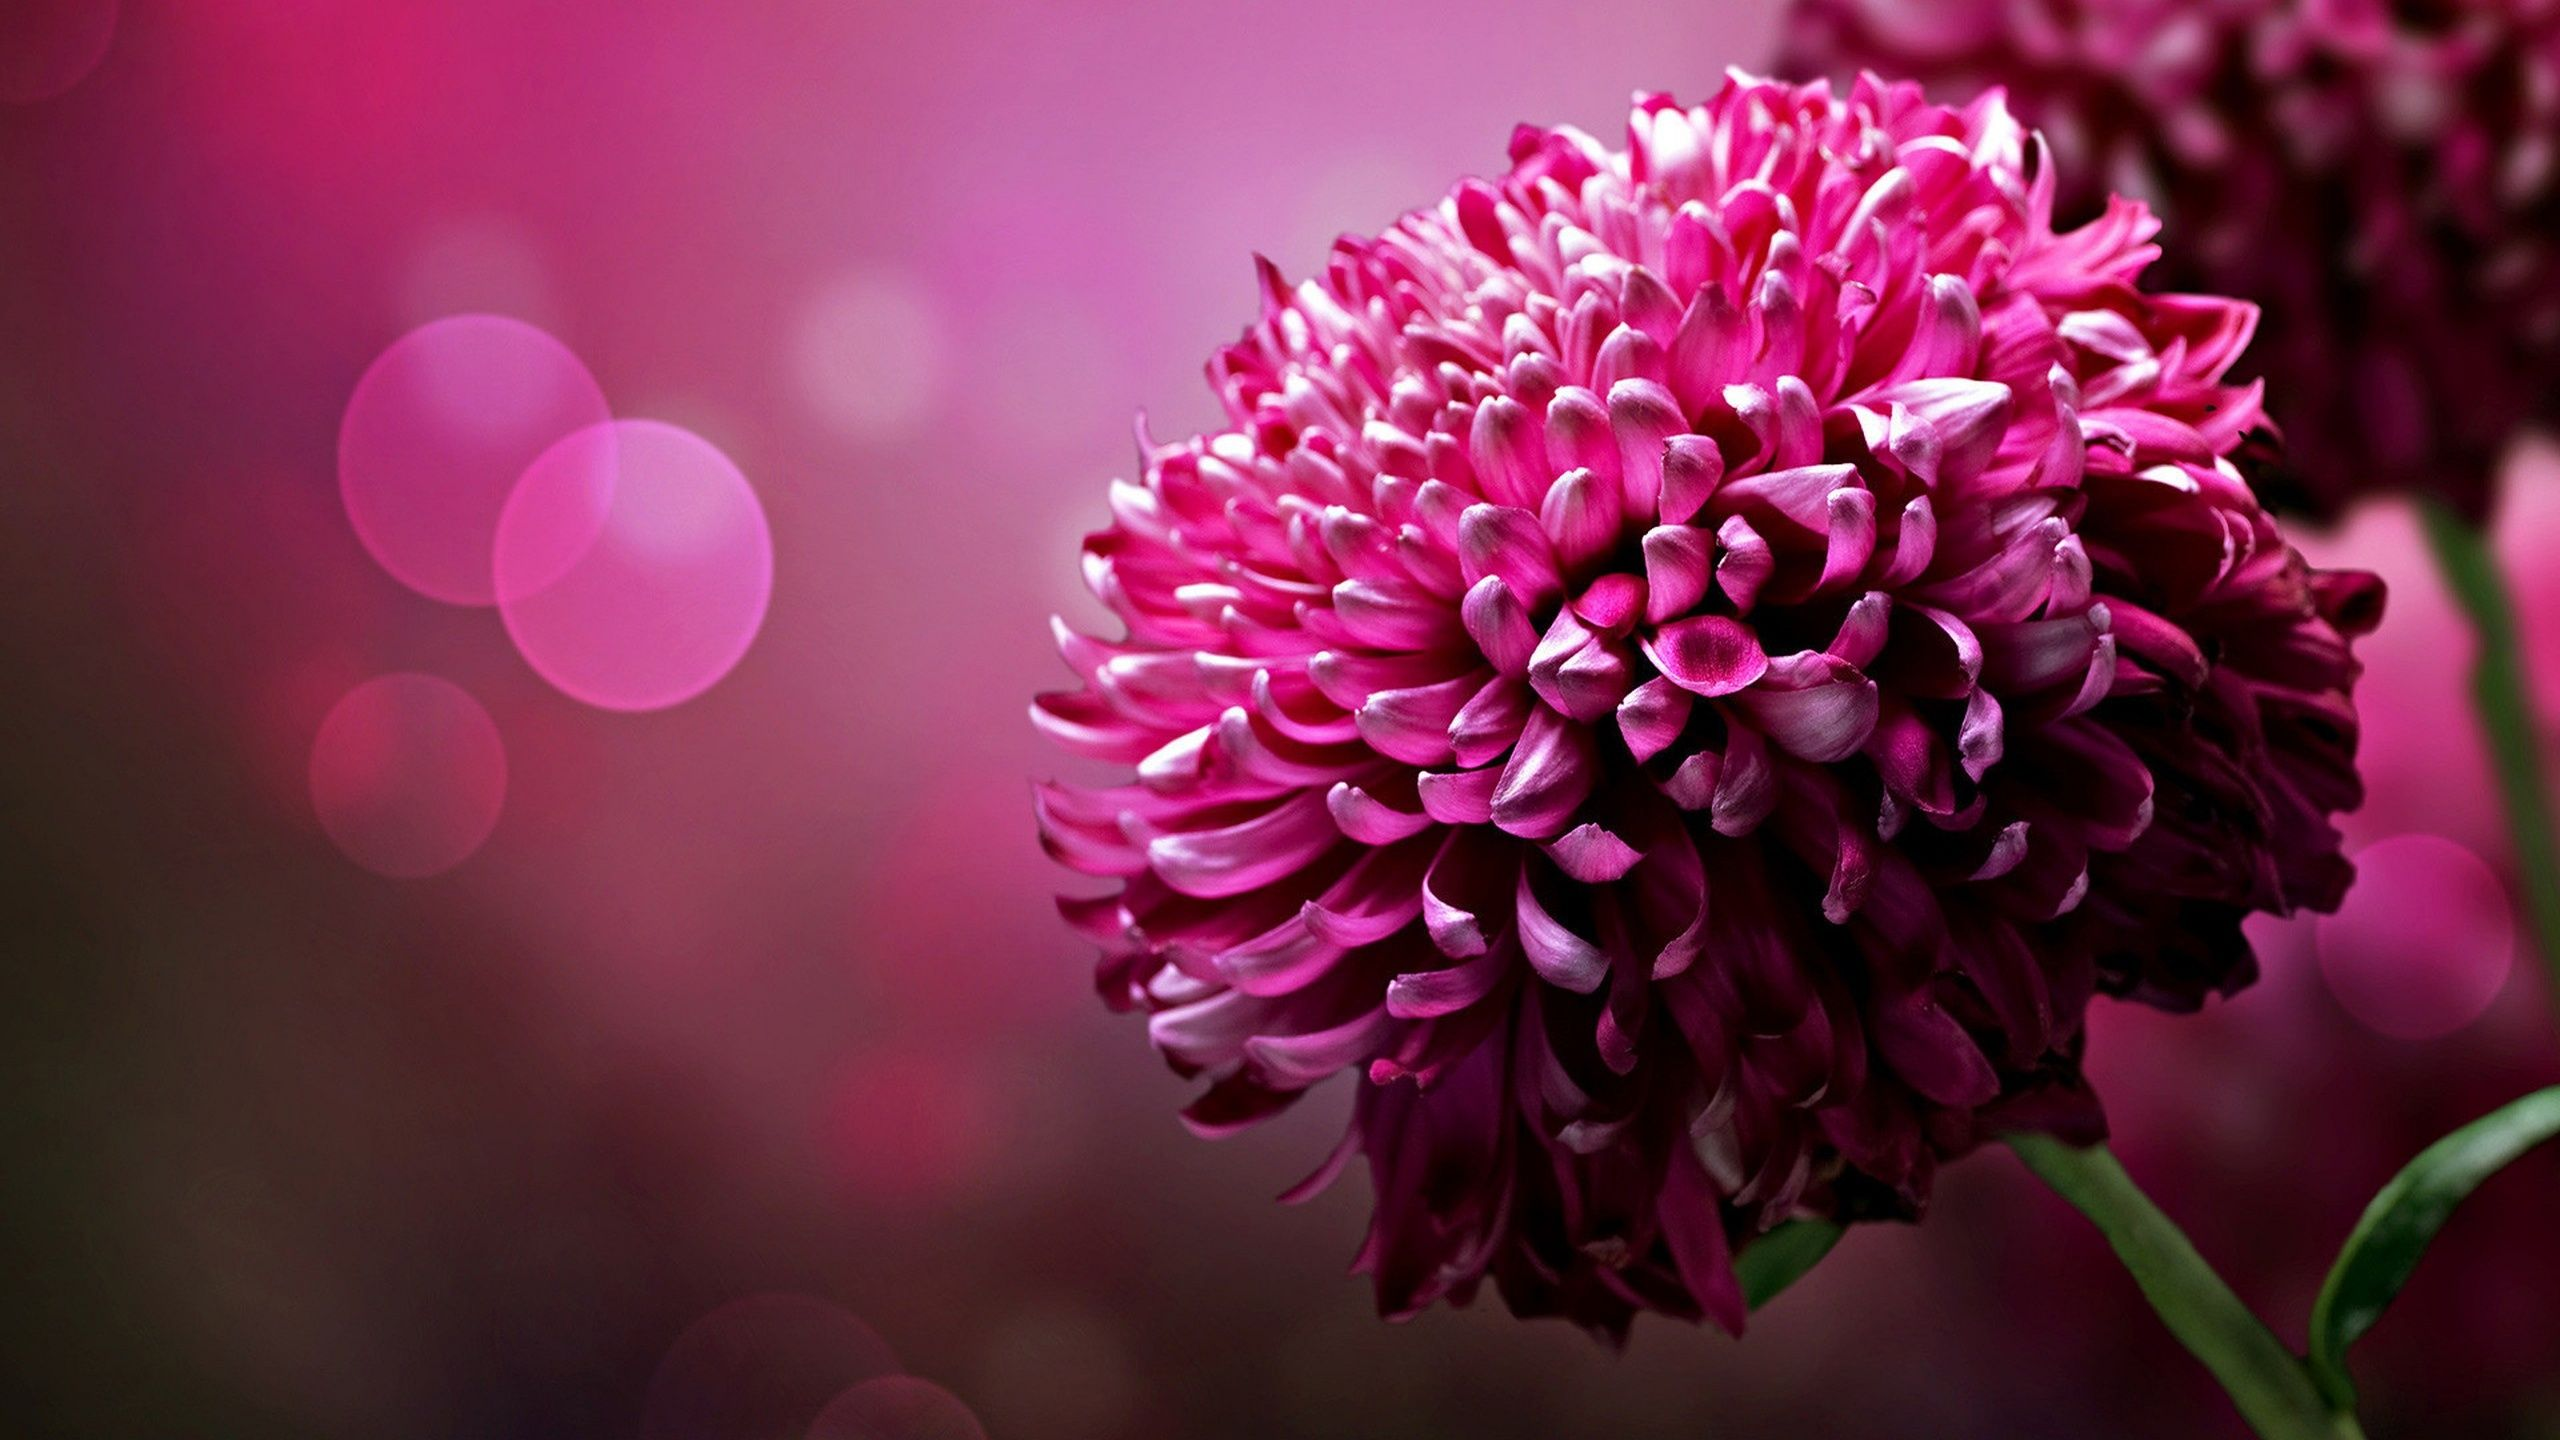 pink flowers hd wallpapers - hd wallpapers inn | flowers